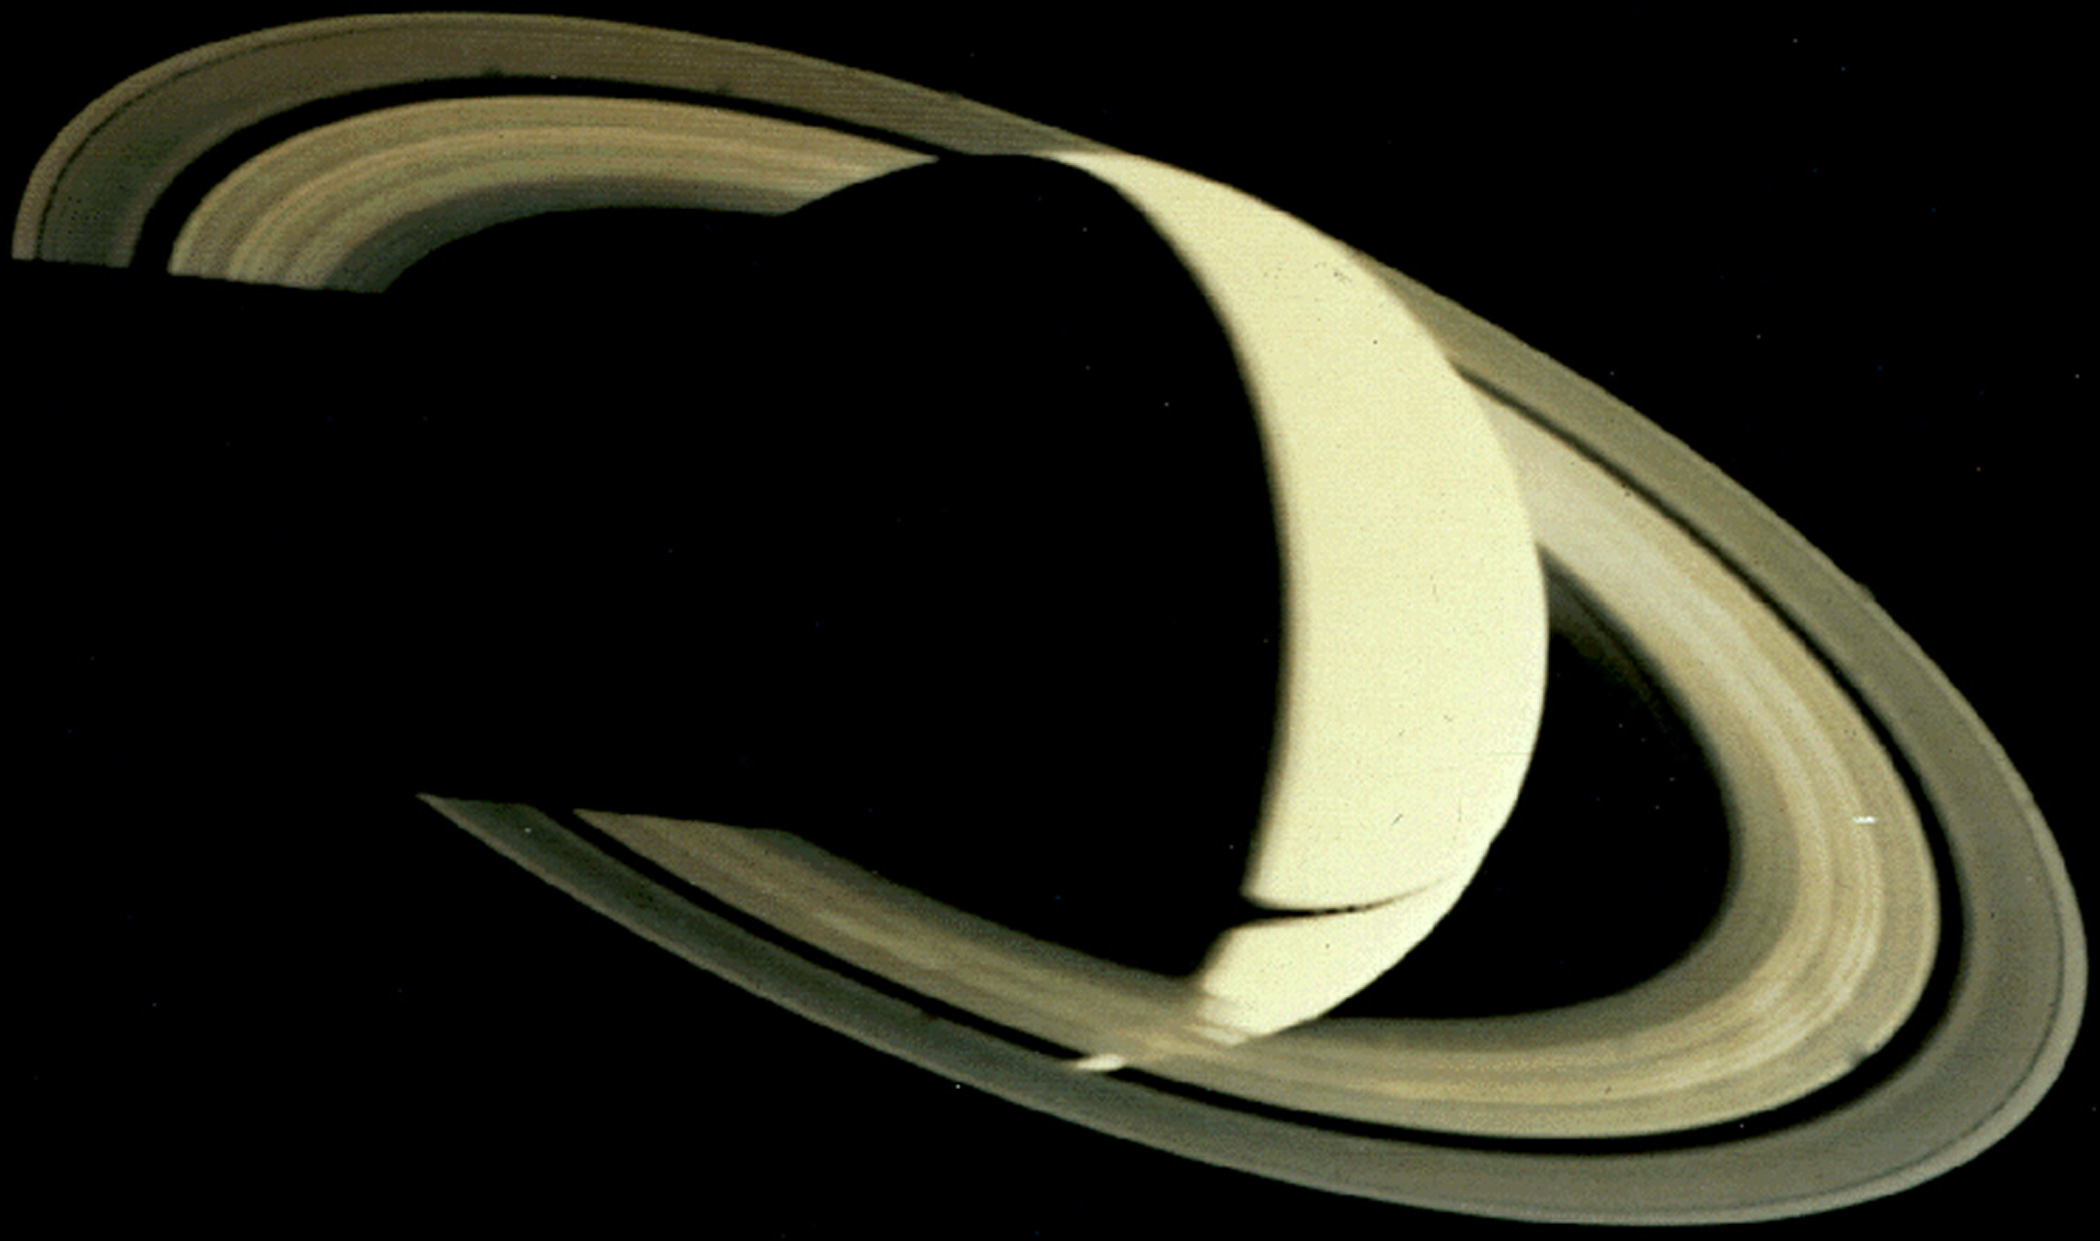 <b>Saturn, 1980</b>; Voyager 1's image of Saturn from 5.3 million km, four days after its closest approach.